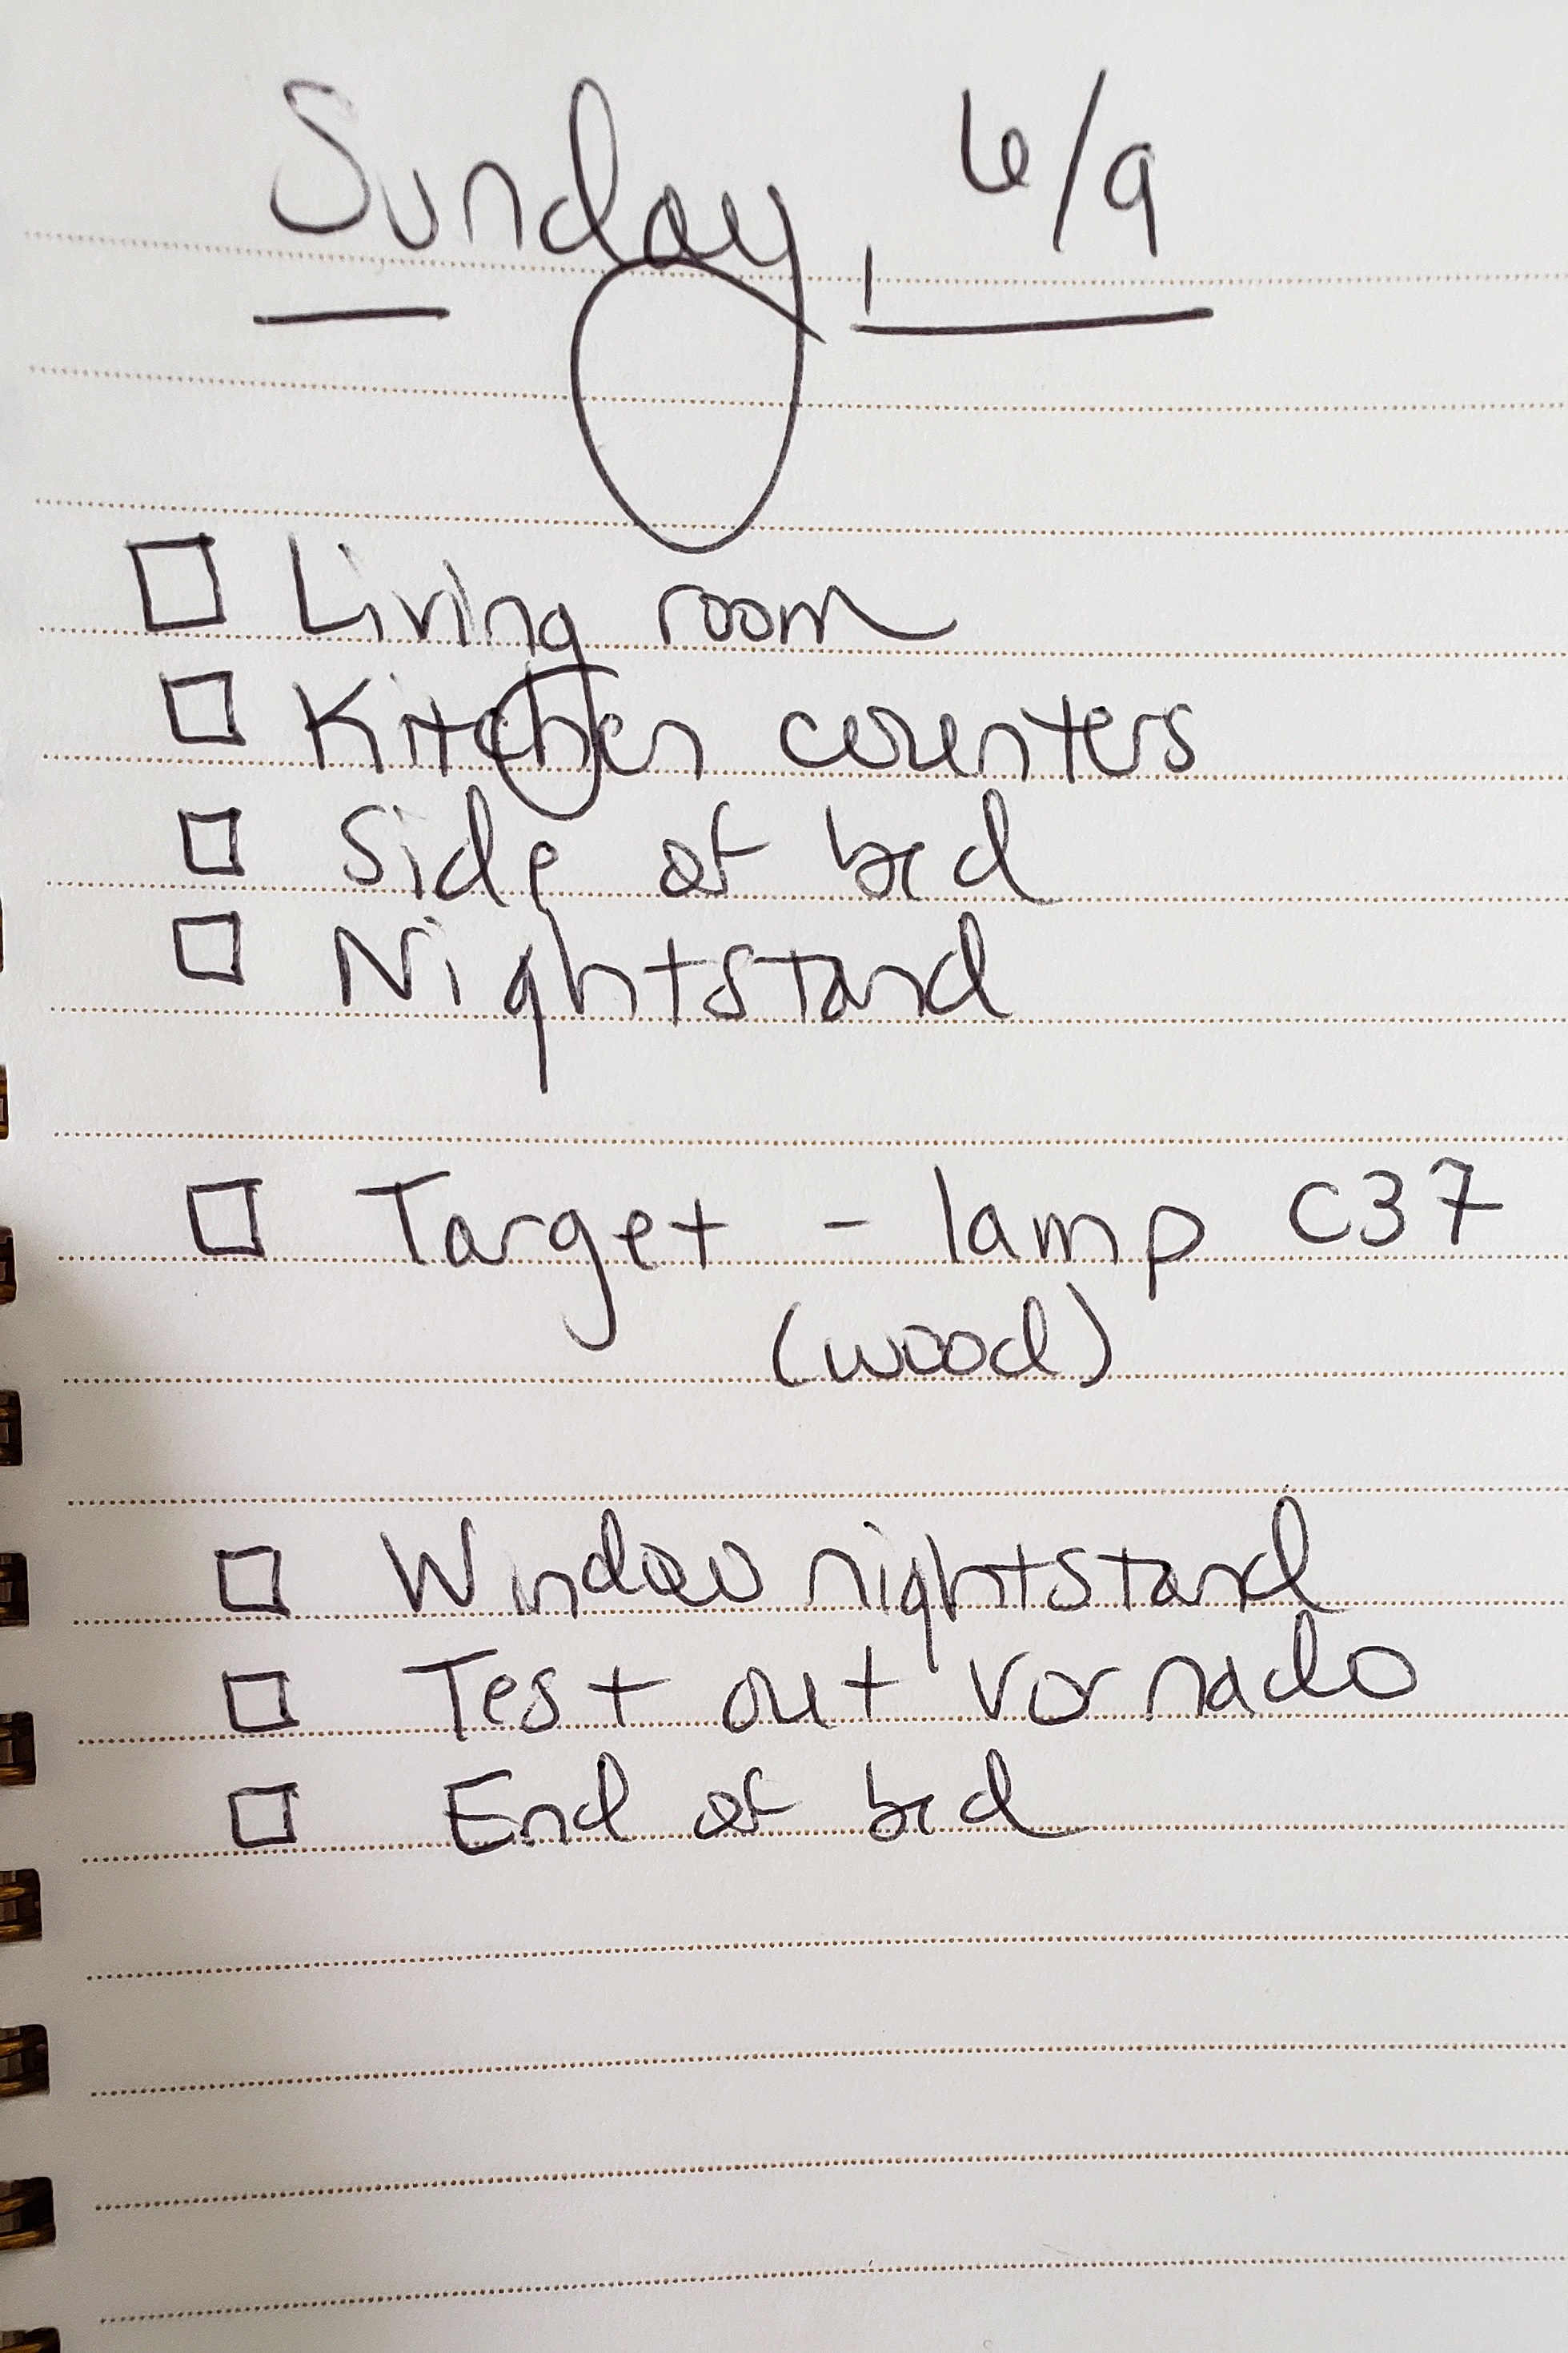 My Sunday list - Here's what I wrote down when I woke up this morning